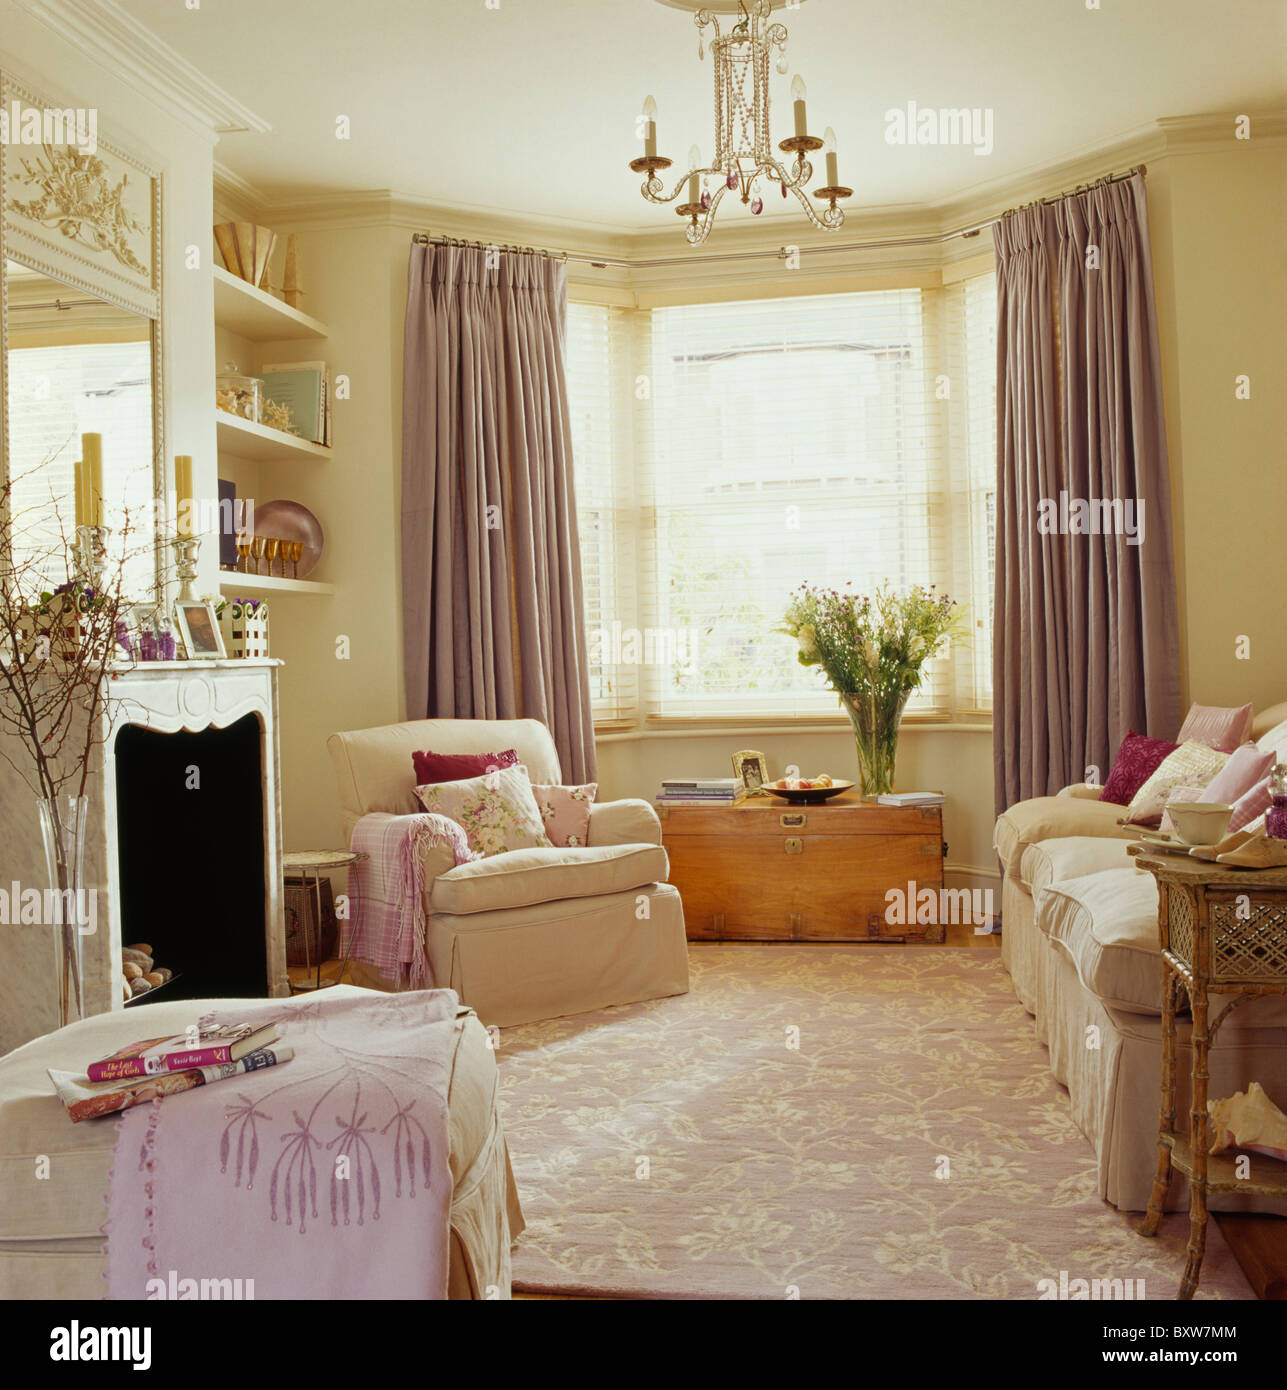 Cream Textured Carpet In Cream Living Room With Pale Mauve